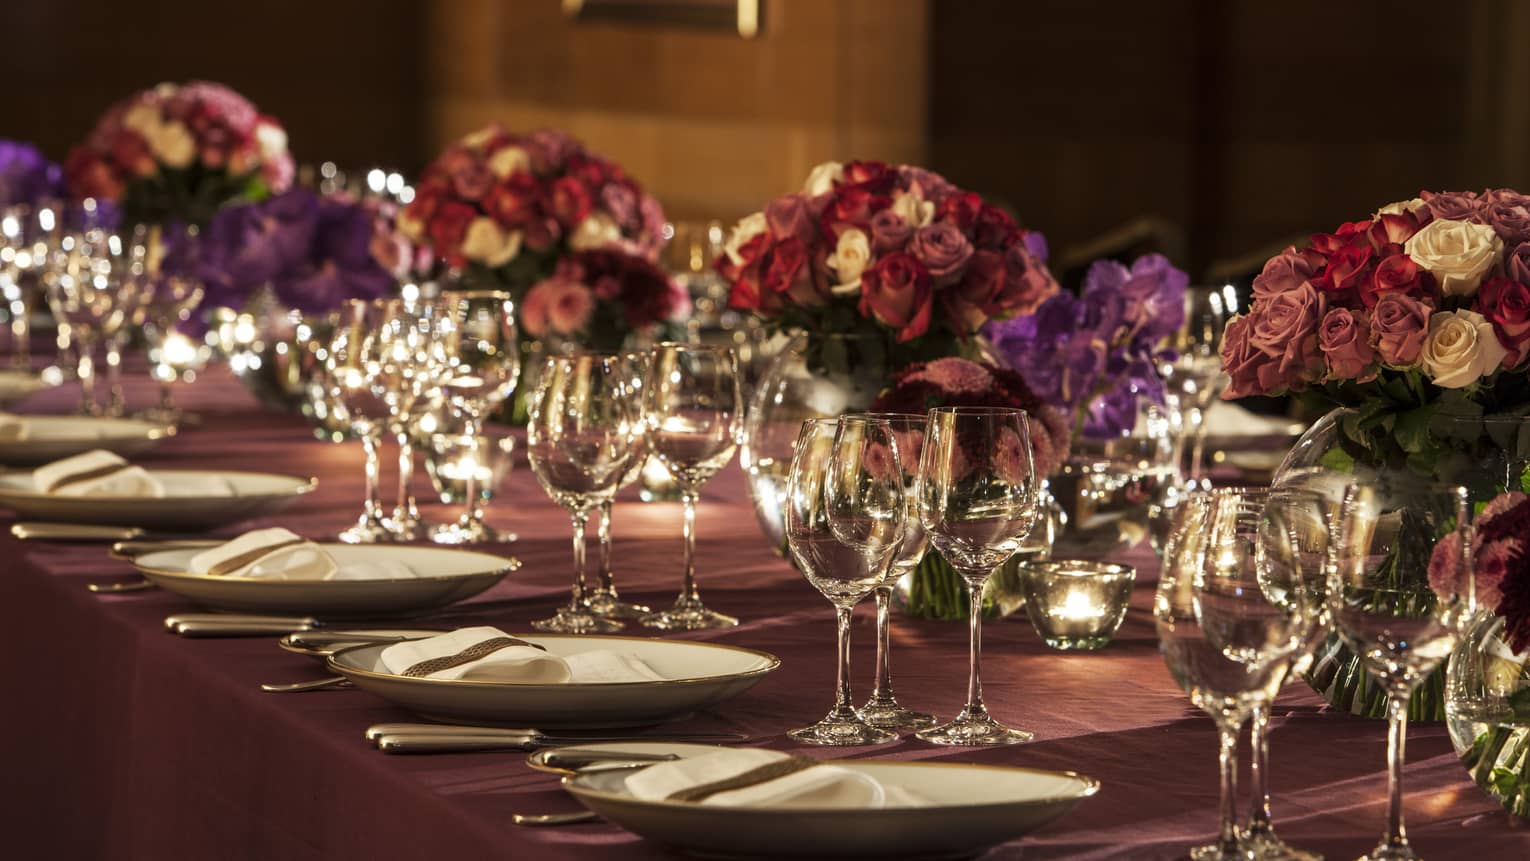 Deep pink and purple roses, wine glasses on elegant, candle-lit banquet table